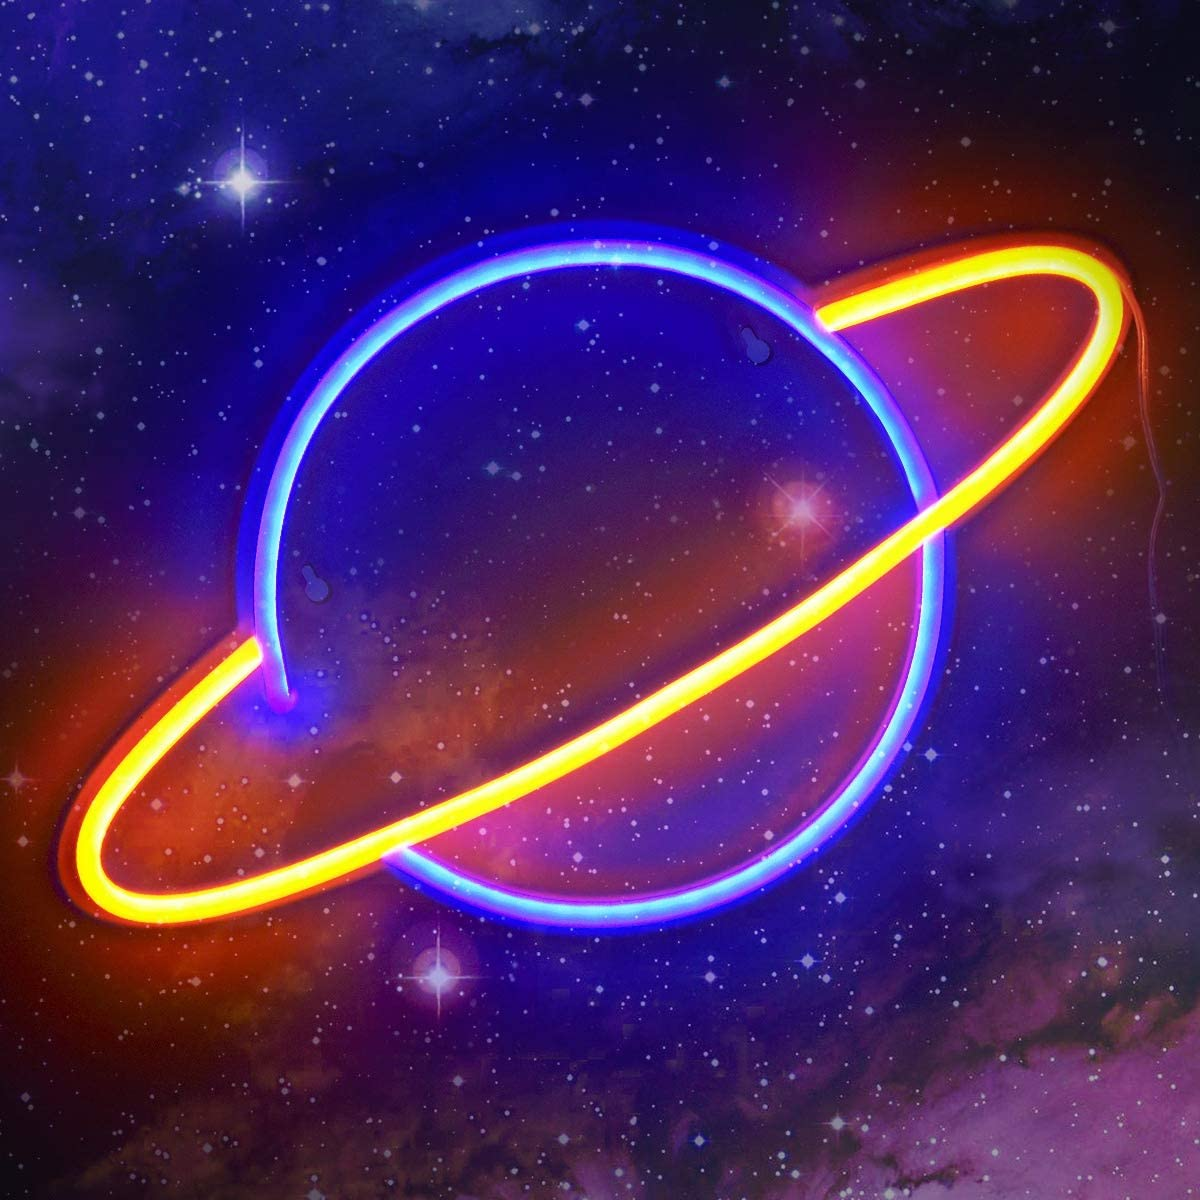 Koicaxy Planet Neon Sign, Led Neon Light Wall Light Led Wall Decor, Battery or USB Powered Light Up Acrylic Neon Sign for Bedroom, Kids Room, Living Room, Bar, Party, Christmas, Wedding